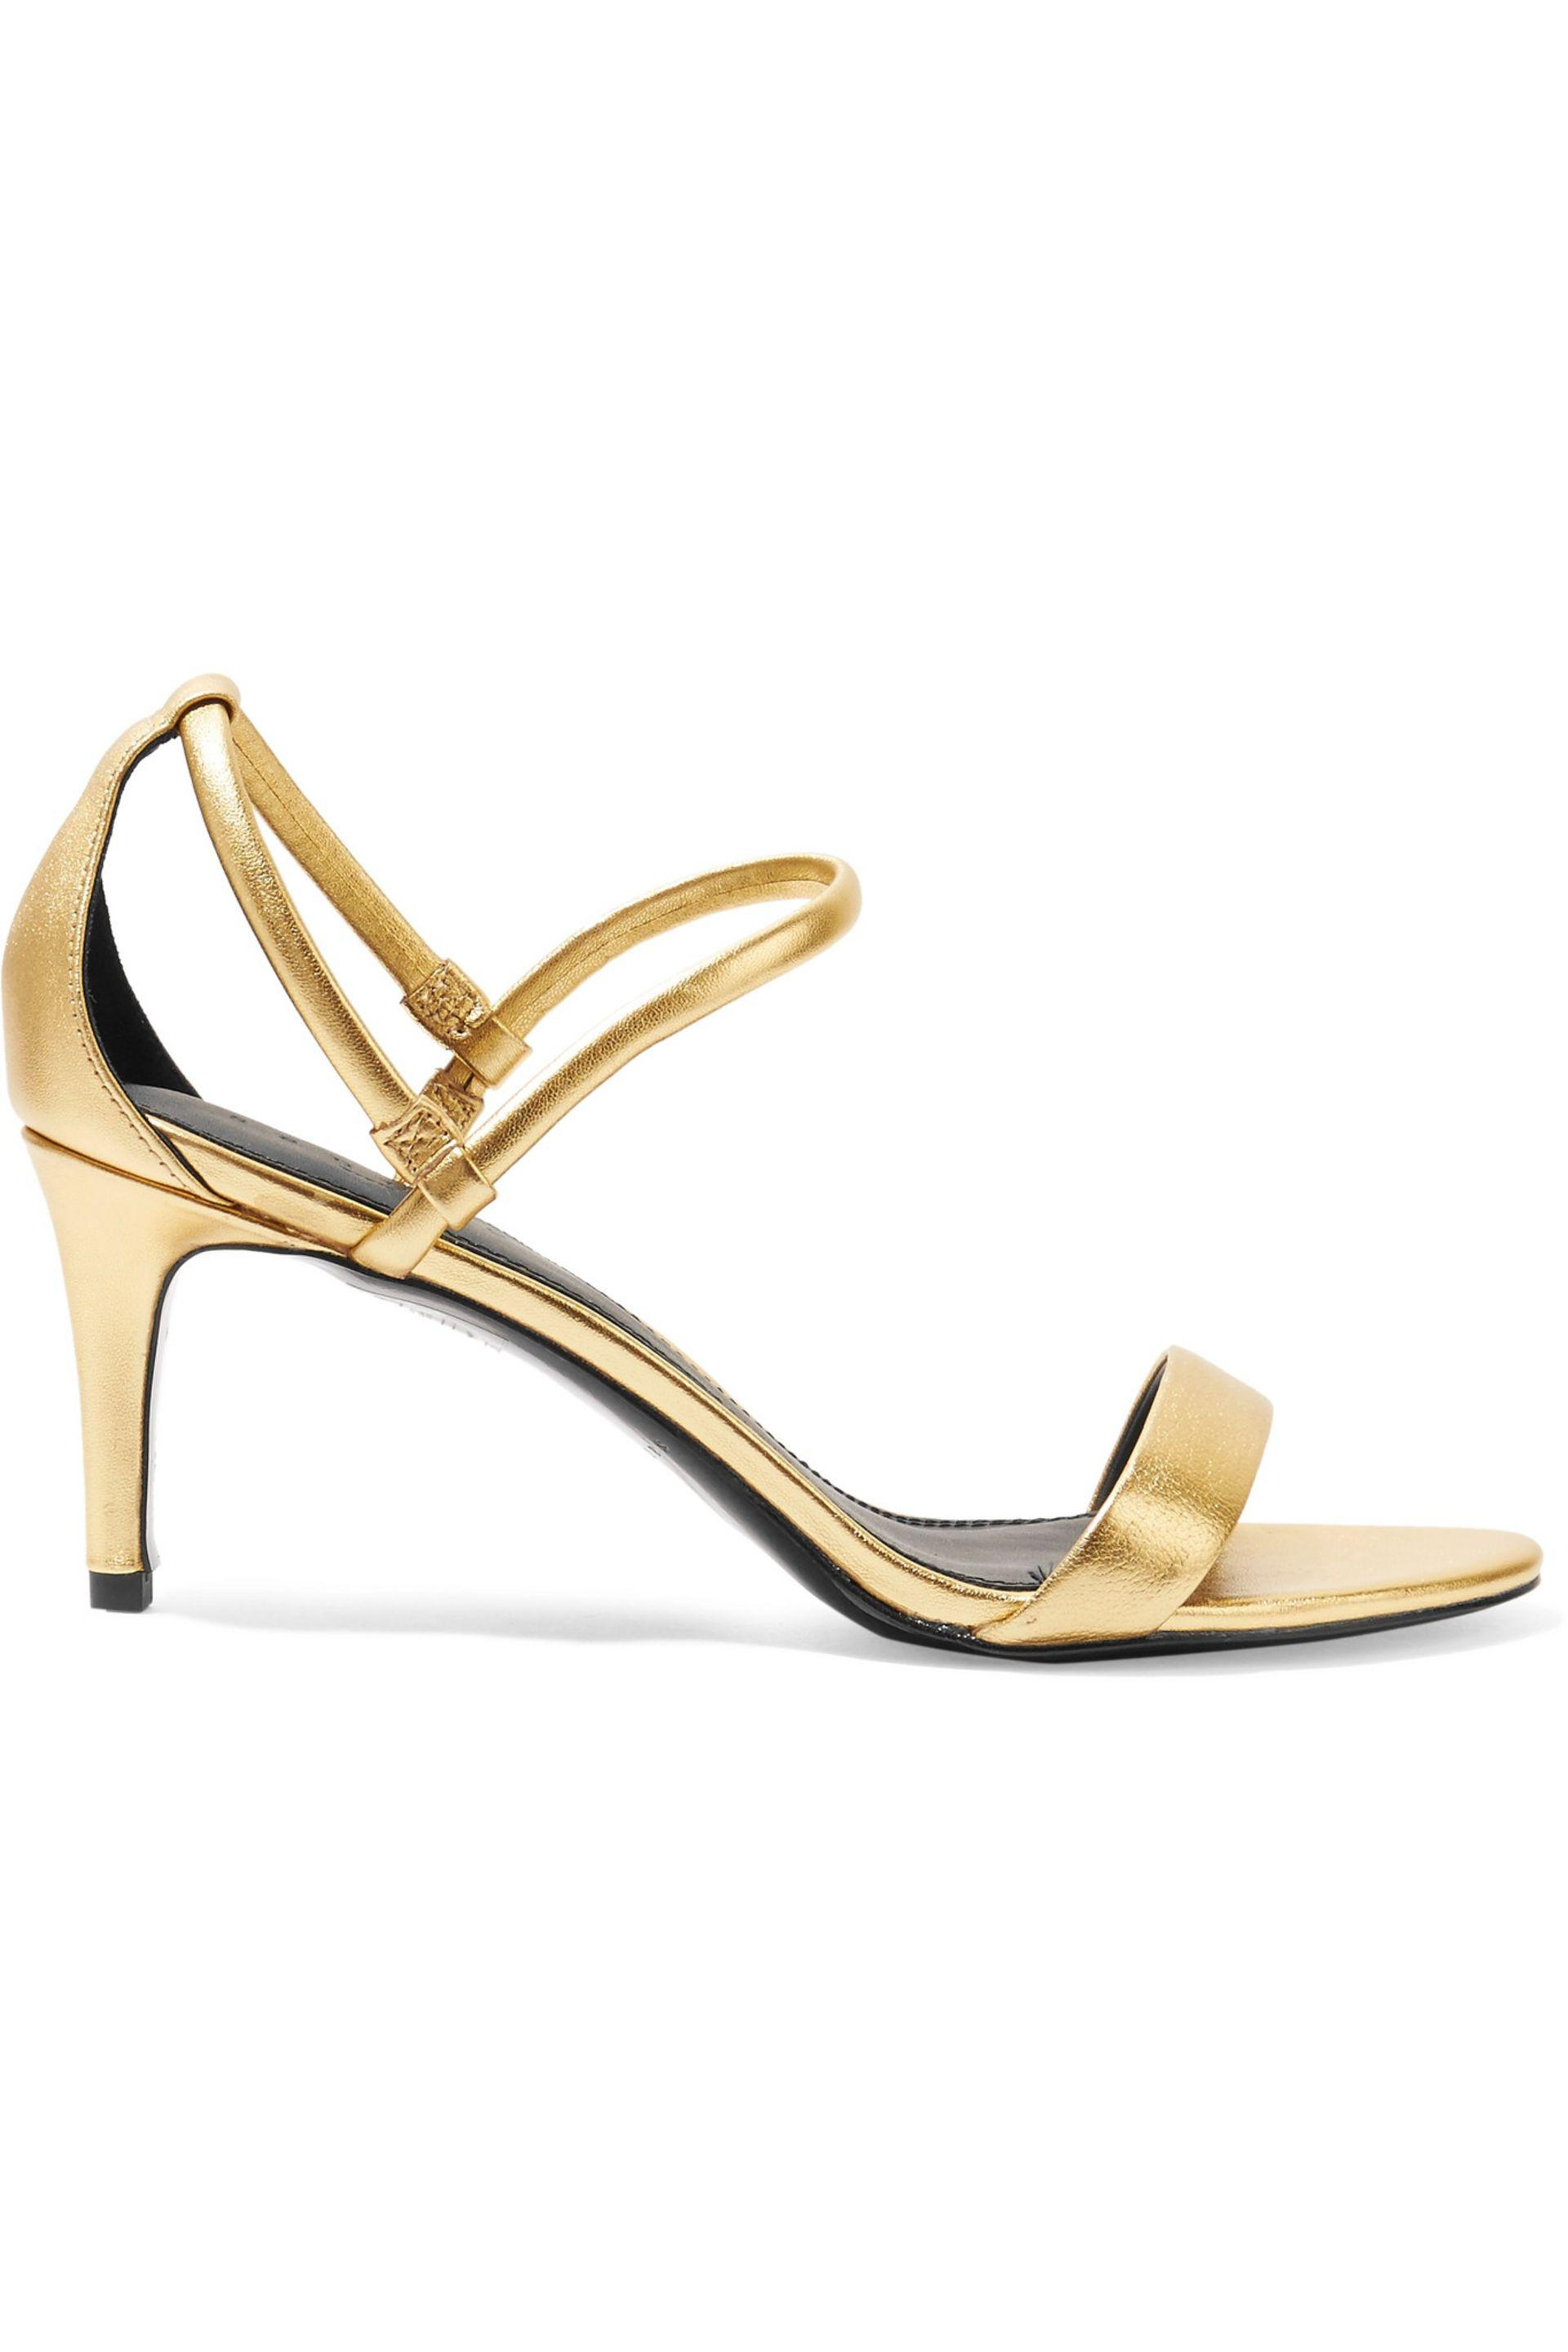 204c0b3cf9a Lyst - Sandro Metallic Textured-leather Sandals in Metallic